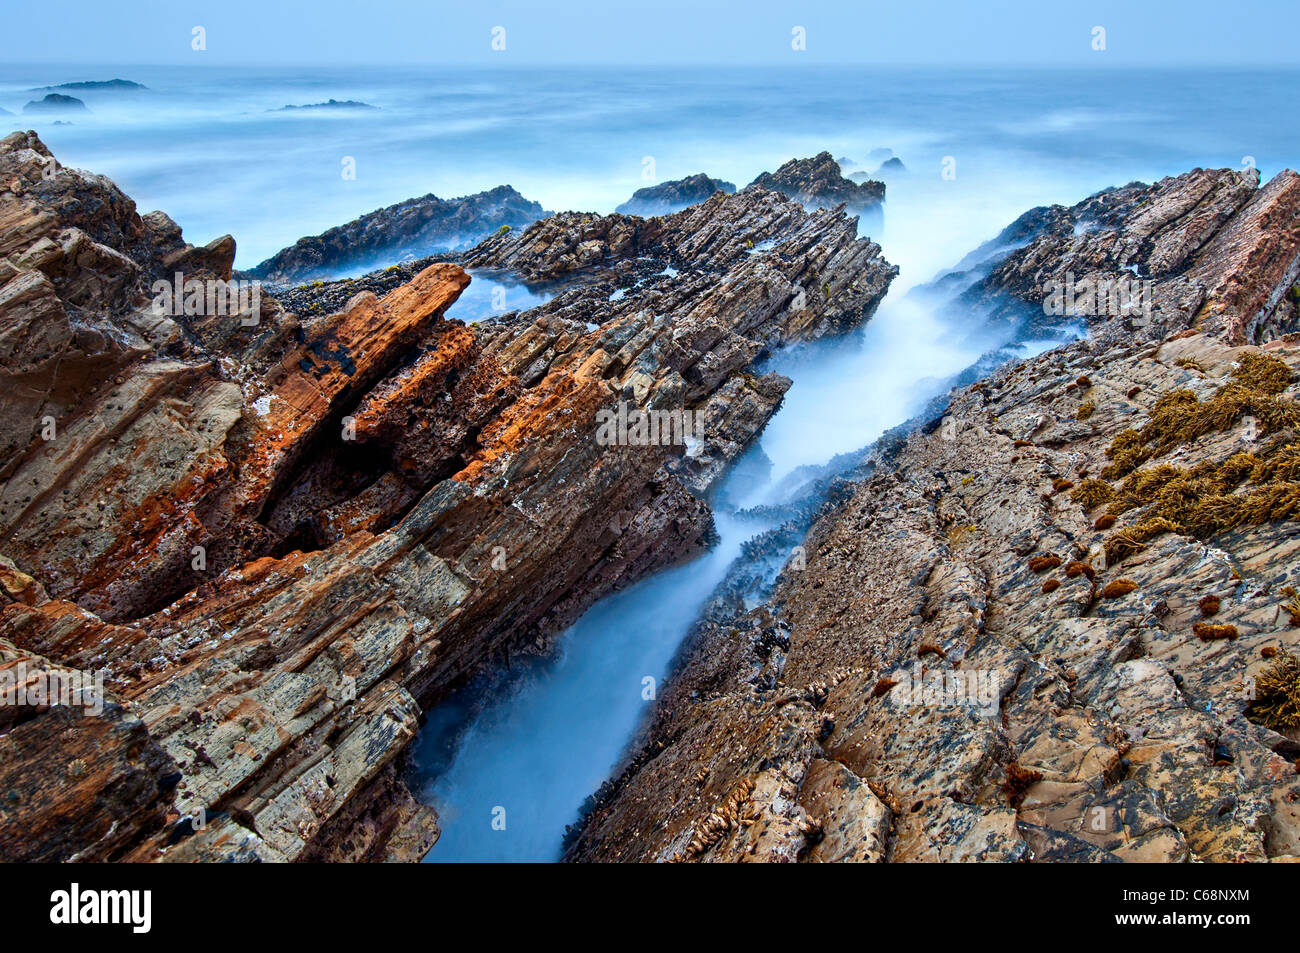 The jagged rocks and cliffs of Montana de Oro State Park in California. - Stock Image